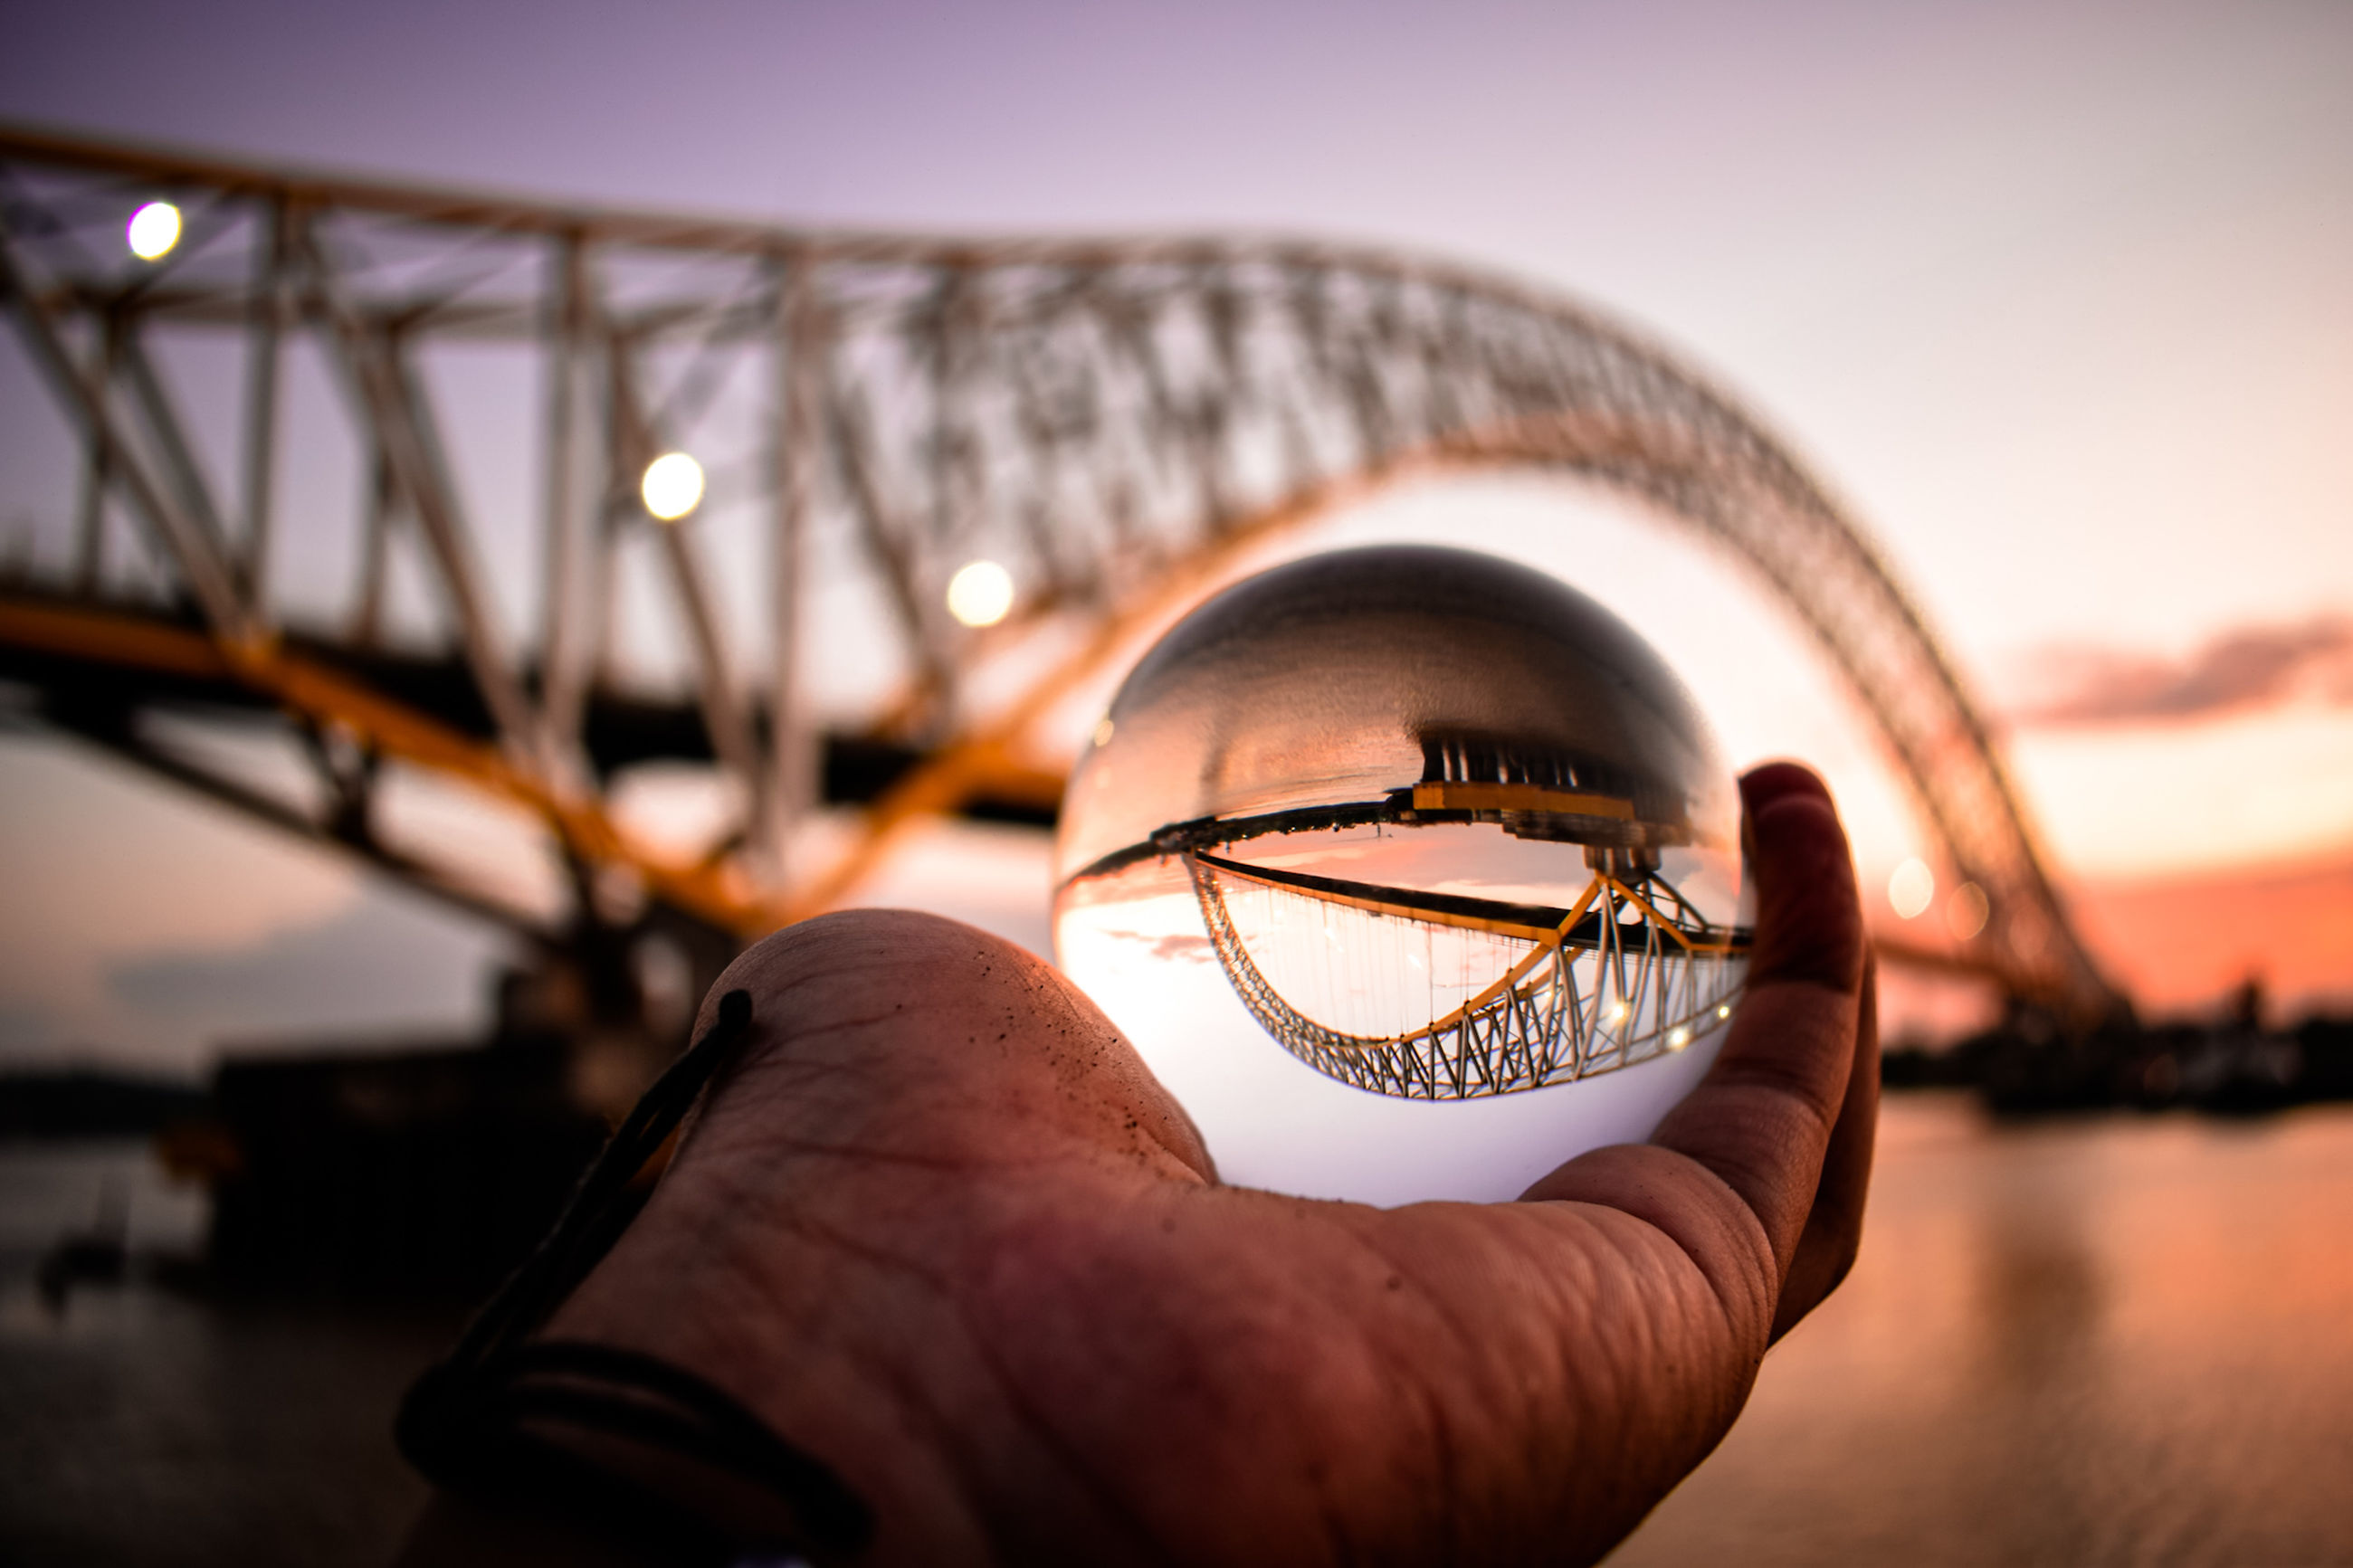 focus on foreground, sky, one person, water, human hand, holding, hand, close-up, real people, human body part, nature, lifestyles, sunset, selective focus, unrecognizable person, clear sky, body part, personal perspective, outdoors, finger